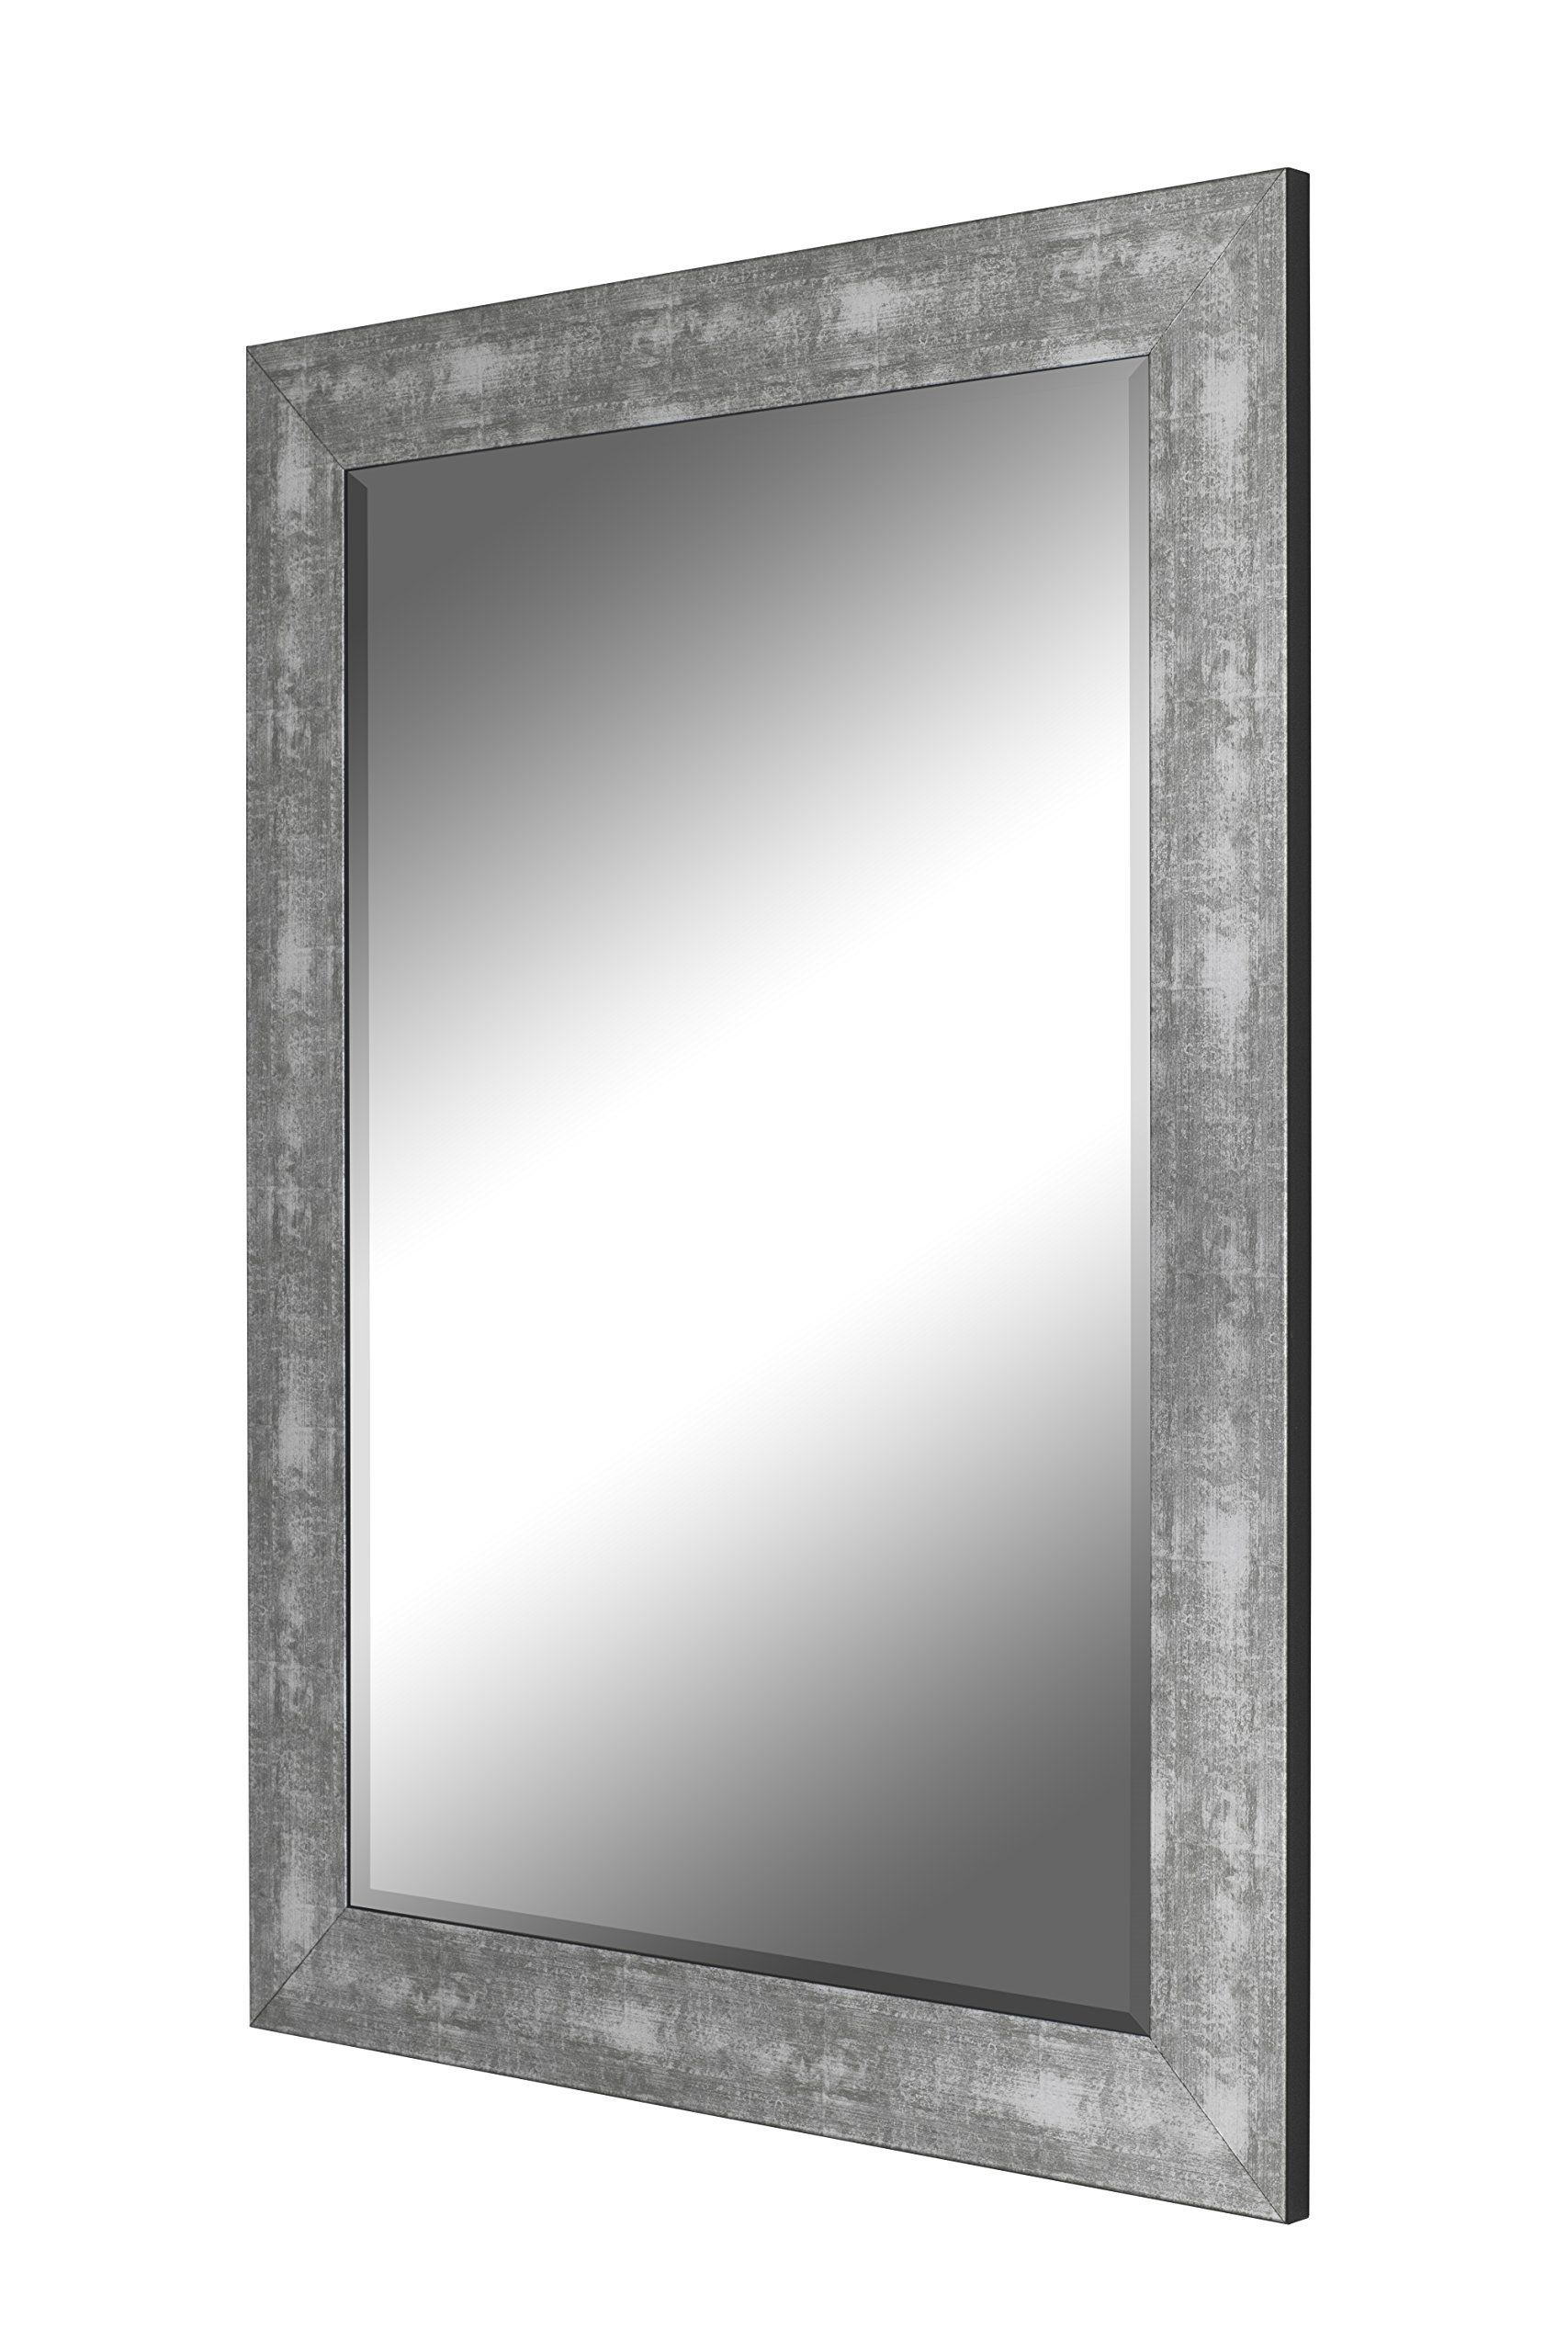 Hitch Erfield Aosta Silver Framed Wall Mirror 30 X 42 Made In Usa 4 Hooks For Vertical Or Horizontal Installation 1 Beveled Gl